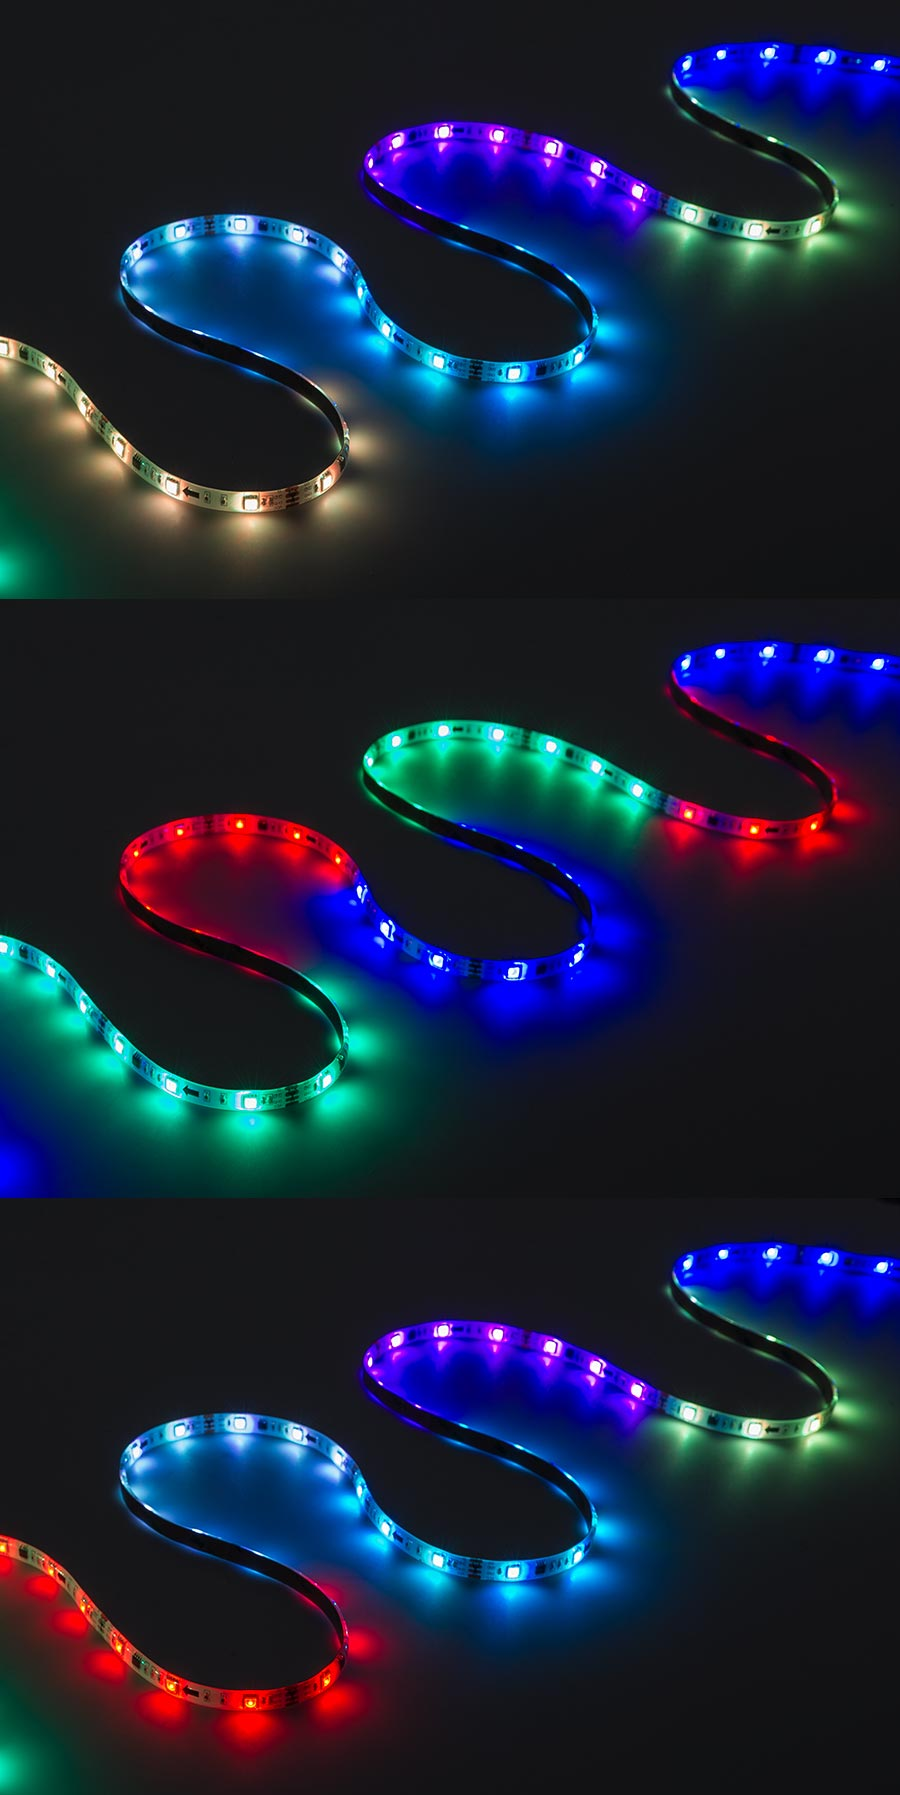 Outdoor rgb led strip light kit color chasing 12v led tape light color chasing rgb led flexible light strip kit includes plug n play contoller with remote and power supply on showing multiple color dreamcolor modes mozeypictures Gallery